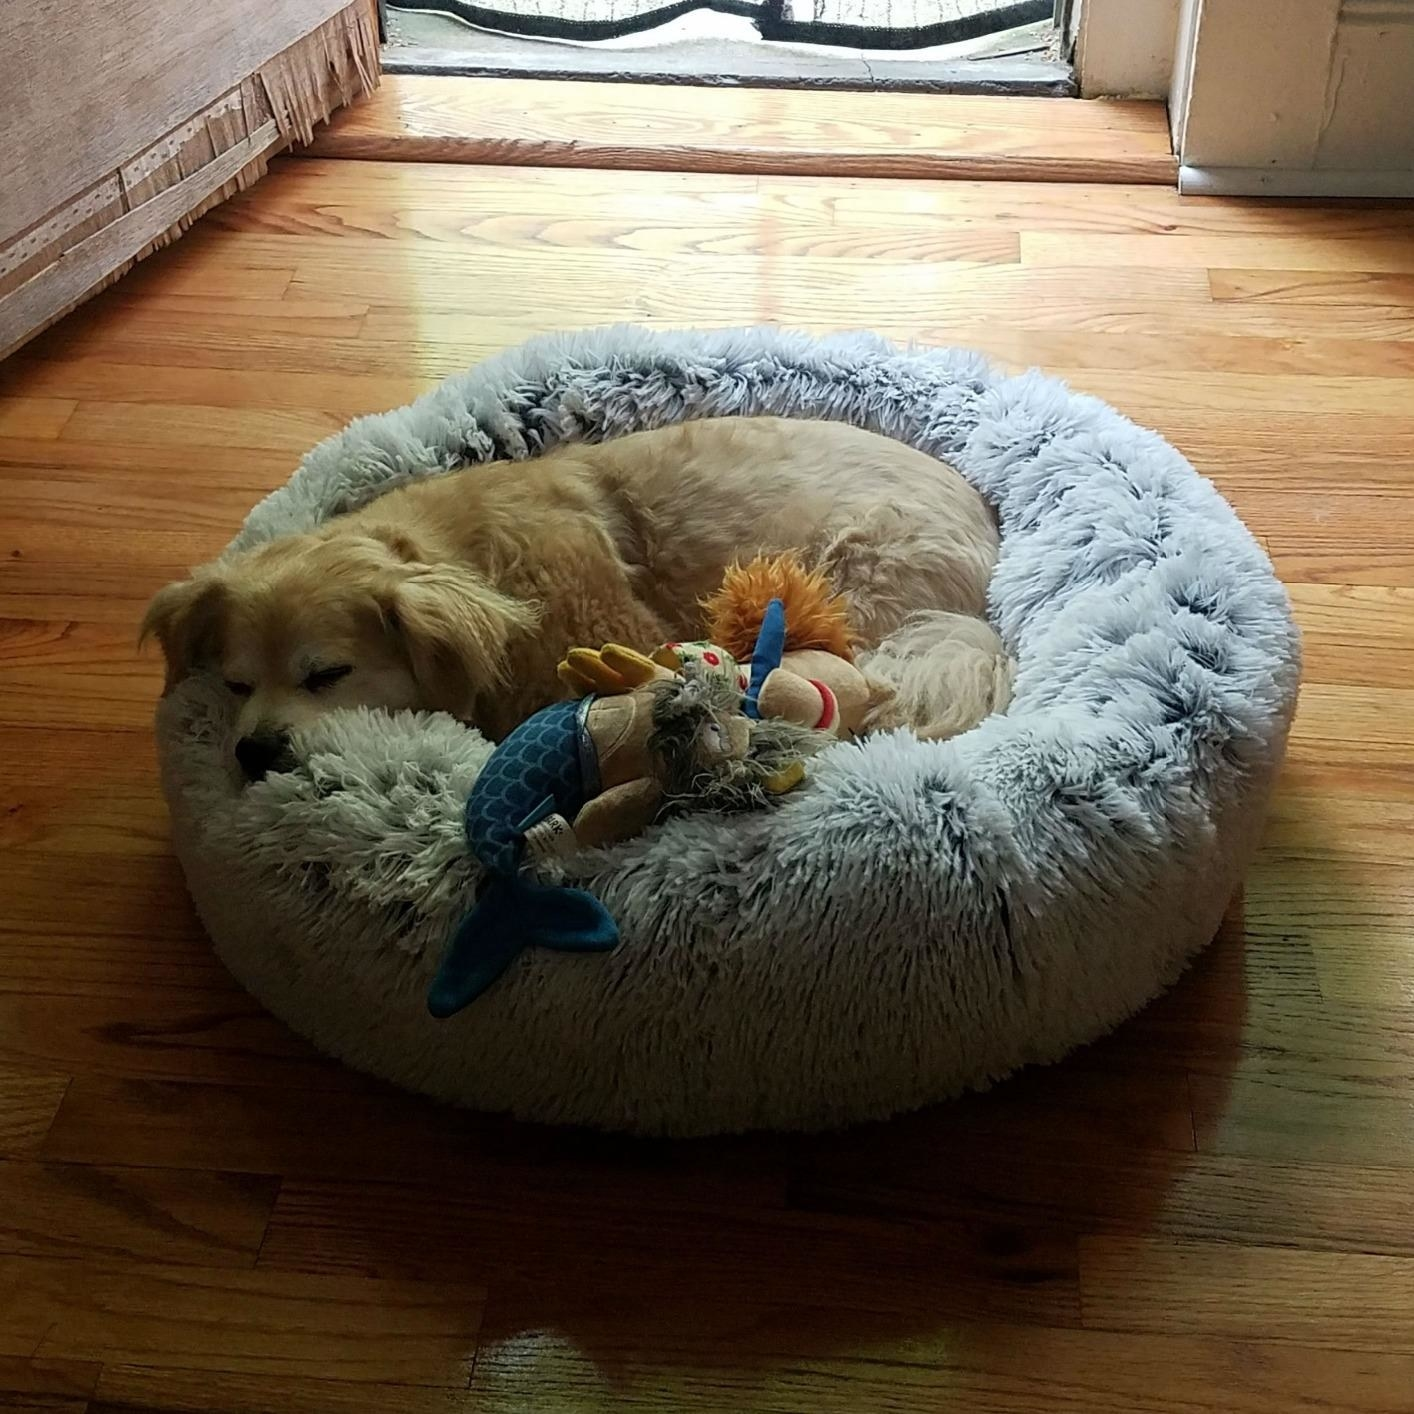 a reviewer's dog in the donut-shaped bed